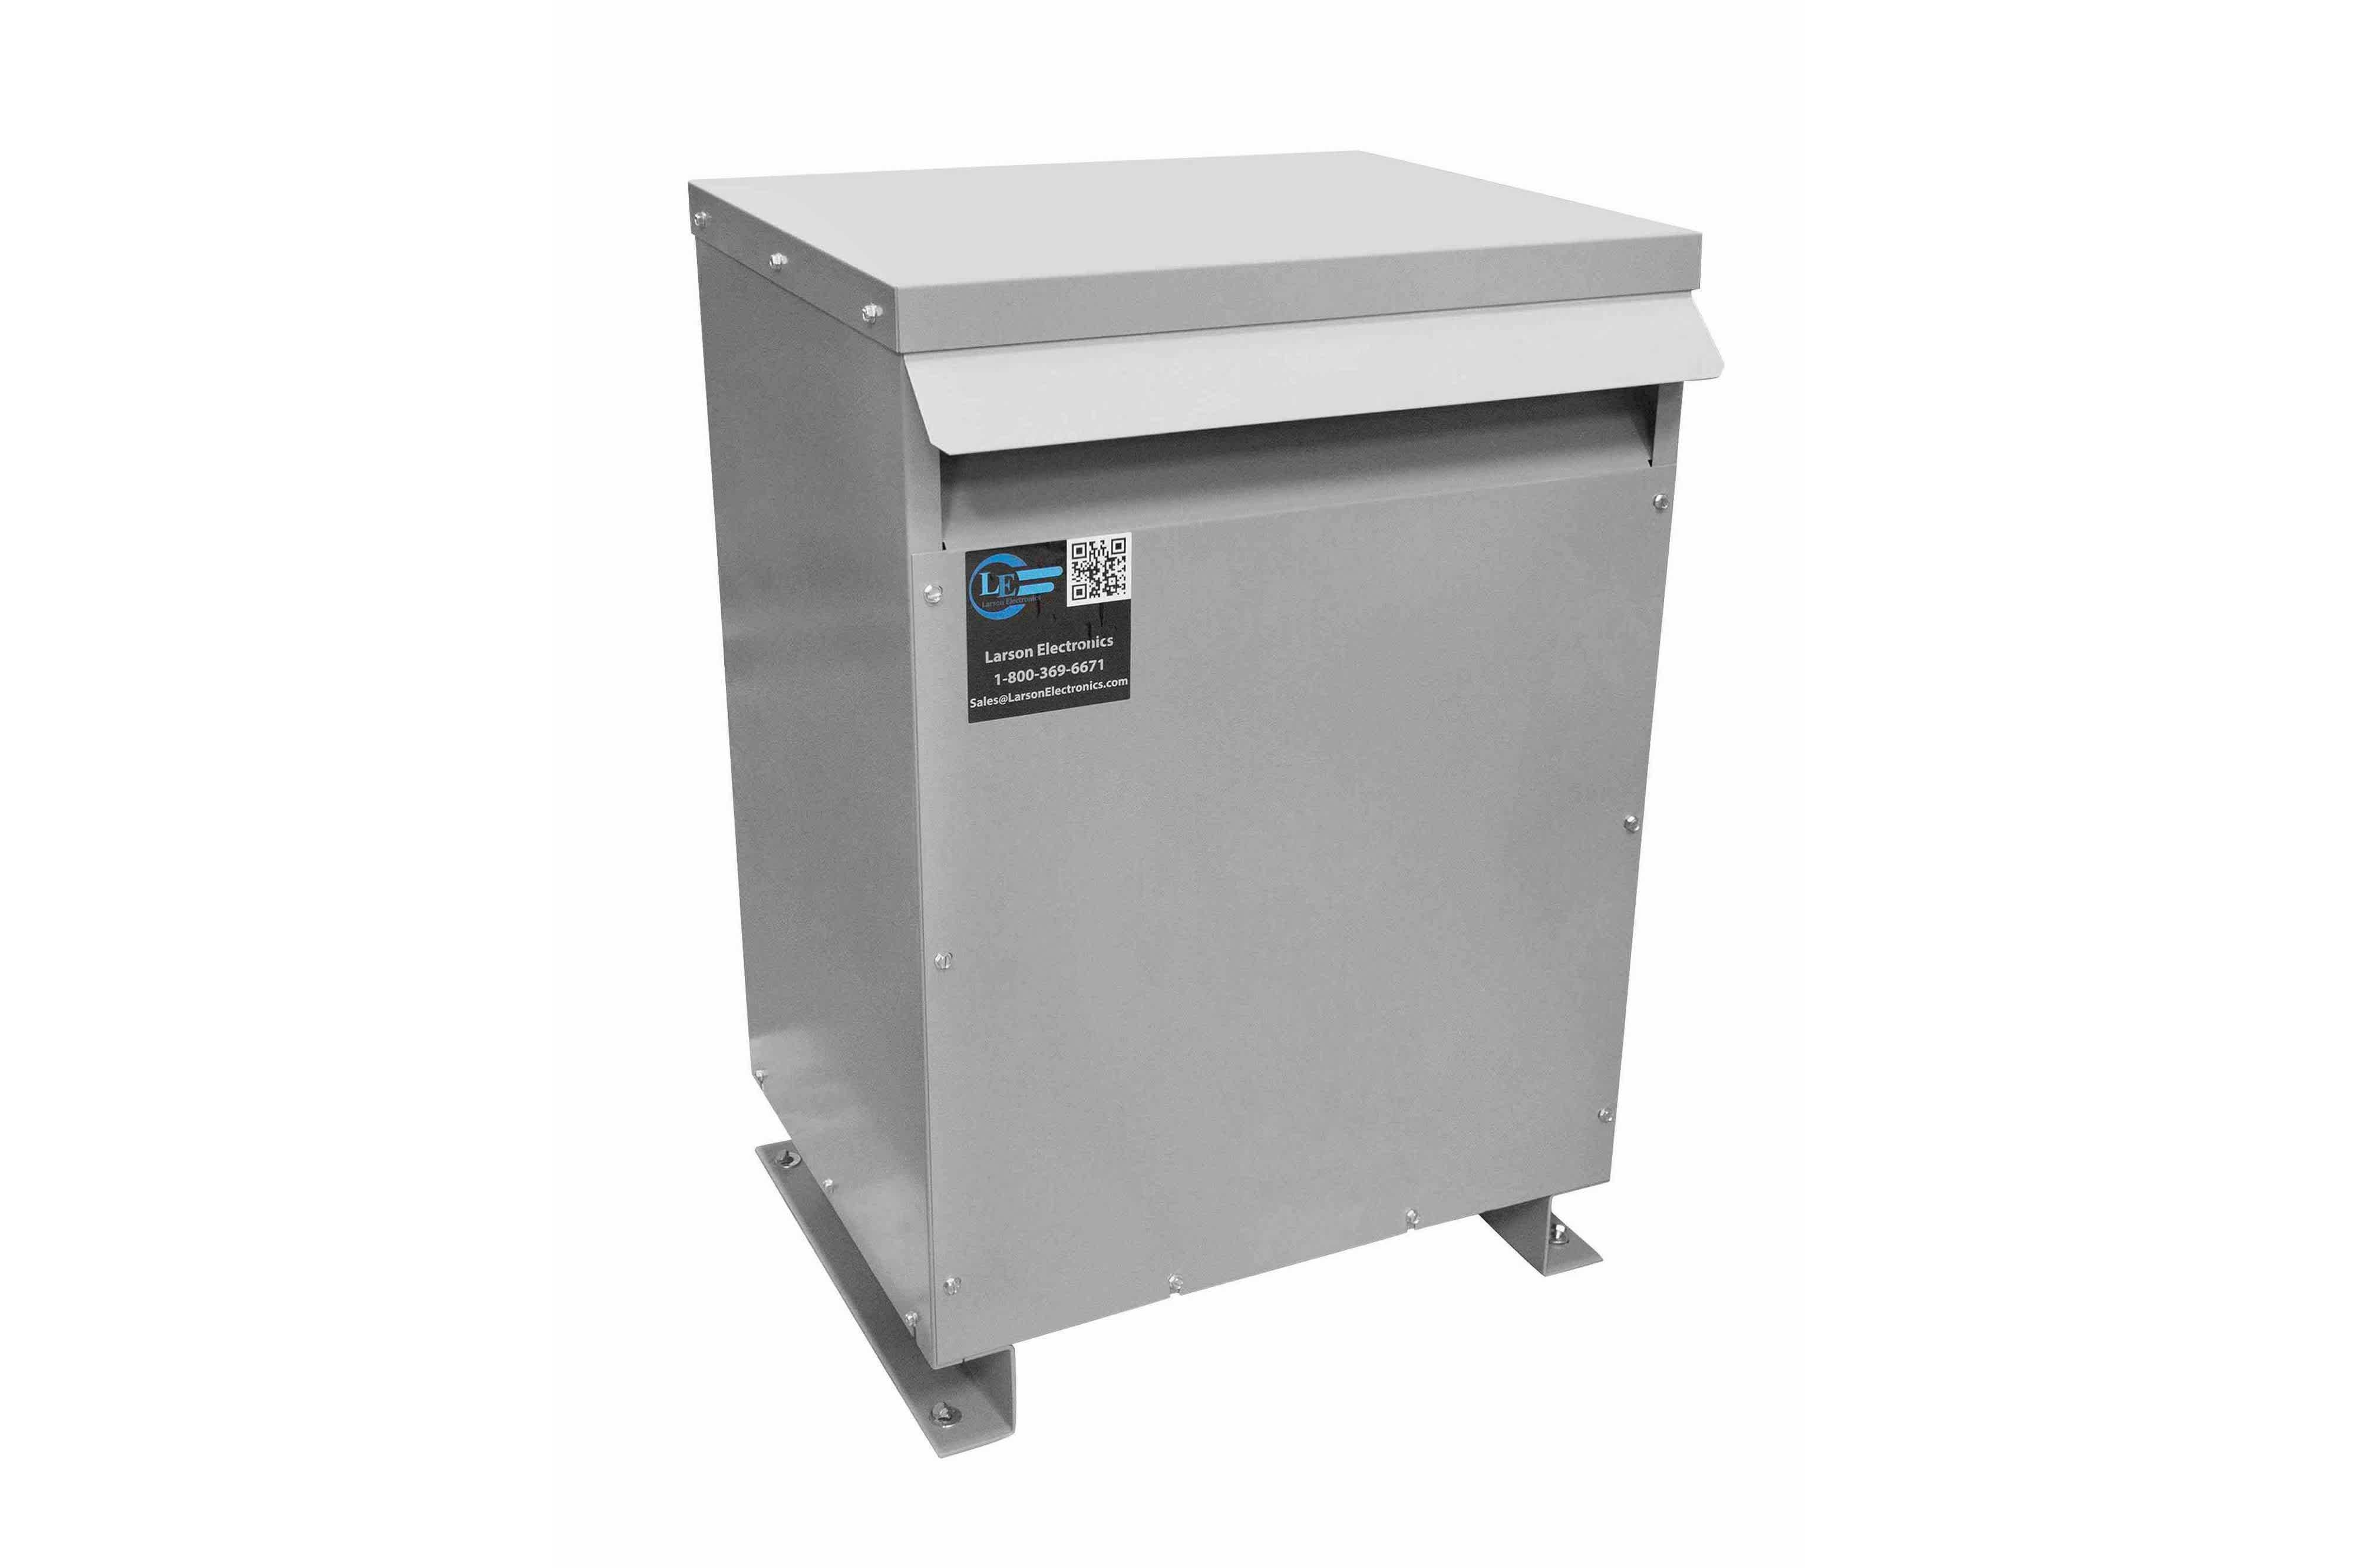 175 kVA 3PH Isolation Transformer, 208V Delta Primary, 400V Delta Secondary, N3R, Ventilated, 60 Hz